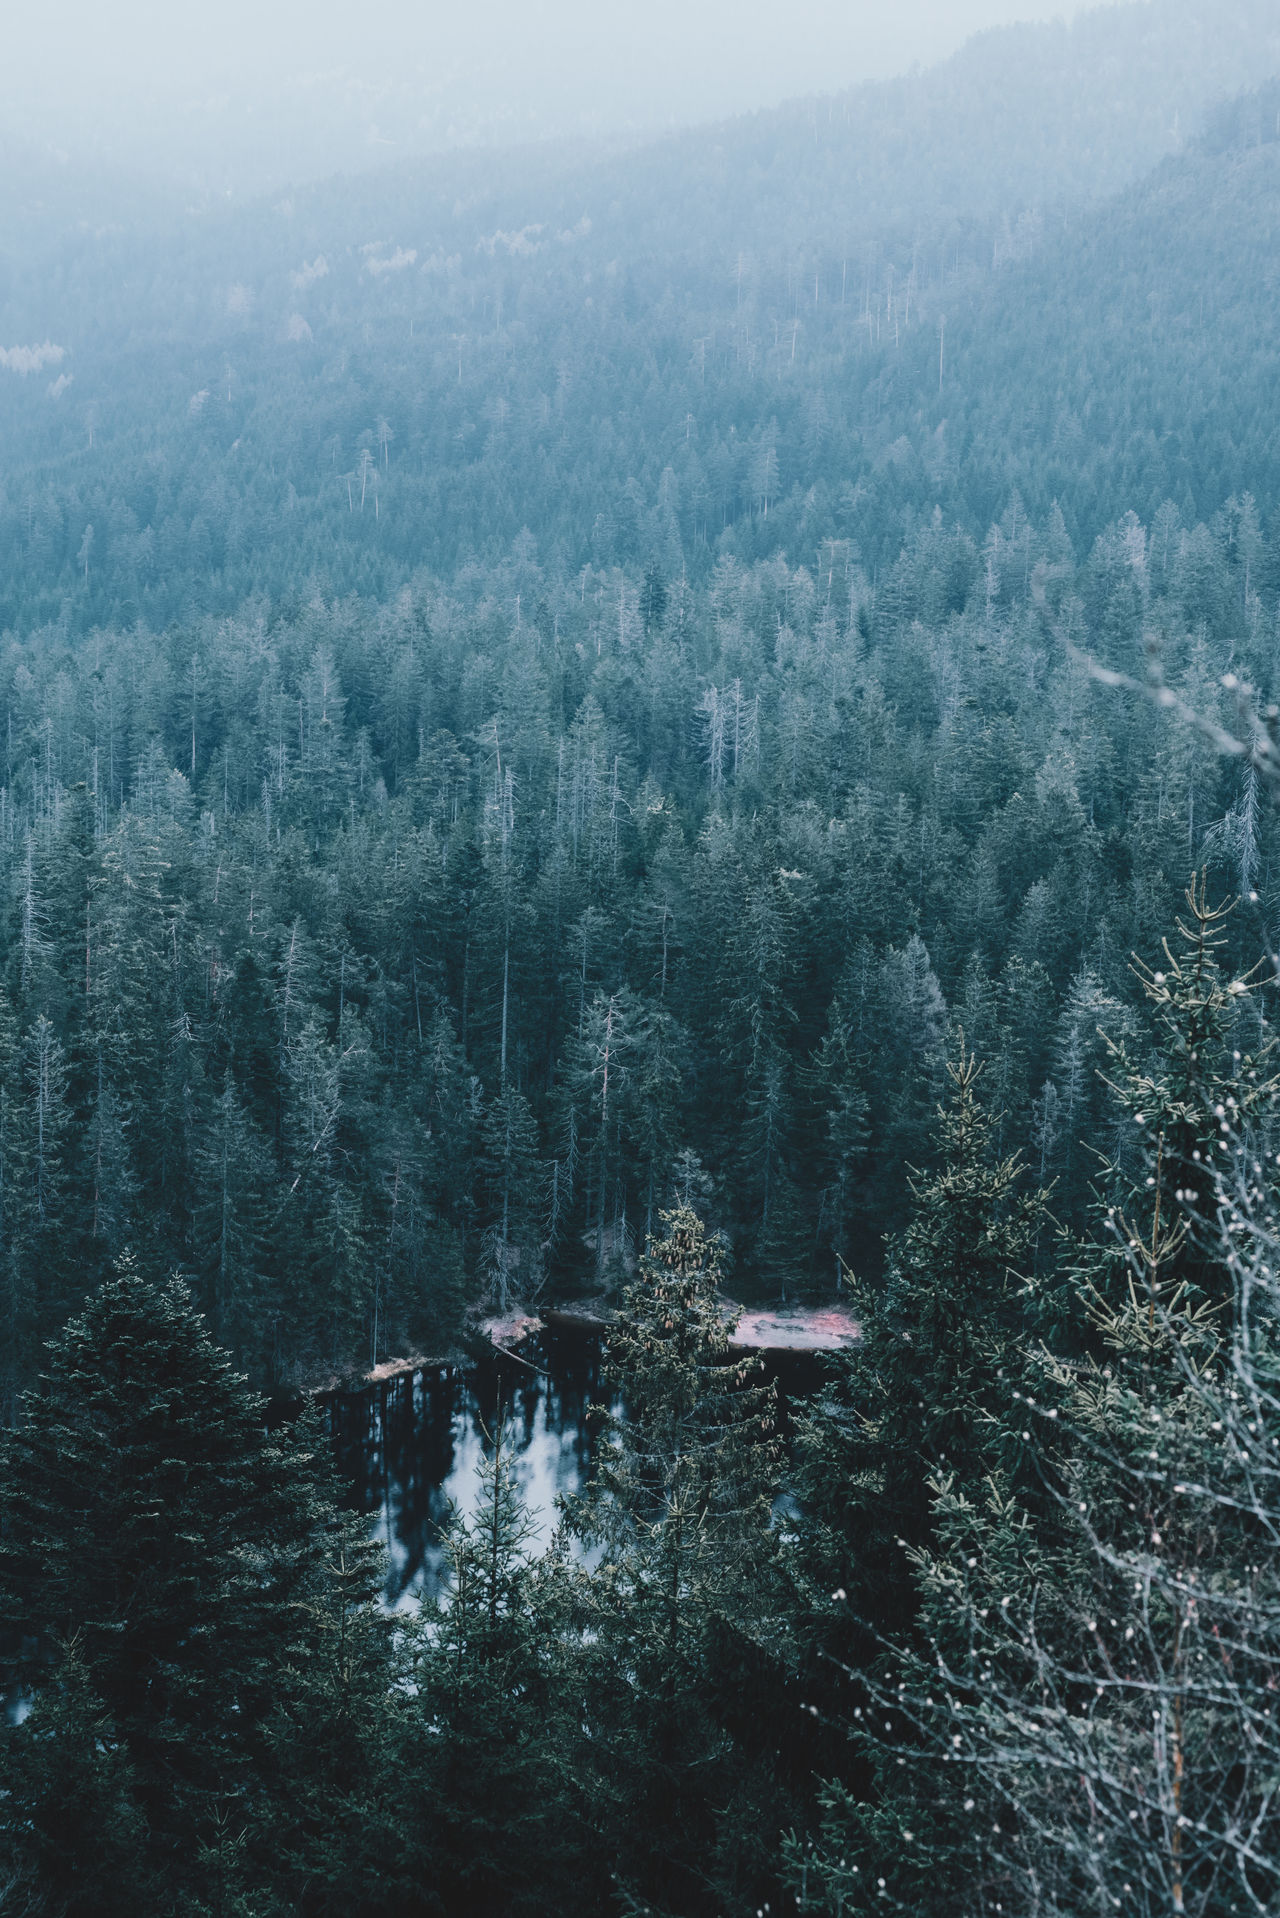 Black Forest Aerial View Architecture Backgrounds Beauty In Nature Building Exterior Built Structure Cityscape Cold Temperature Day Growth High Angle View Landscape Mountain Nature No People Outdoors Scenics Sky Snow Tranquil Scene Tranquility Tree